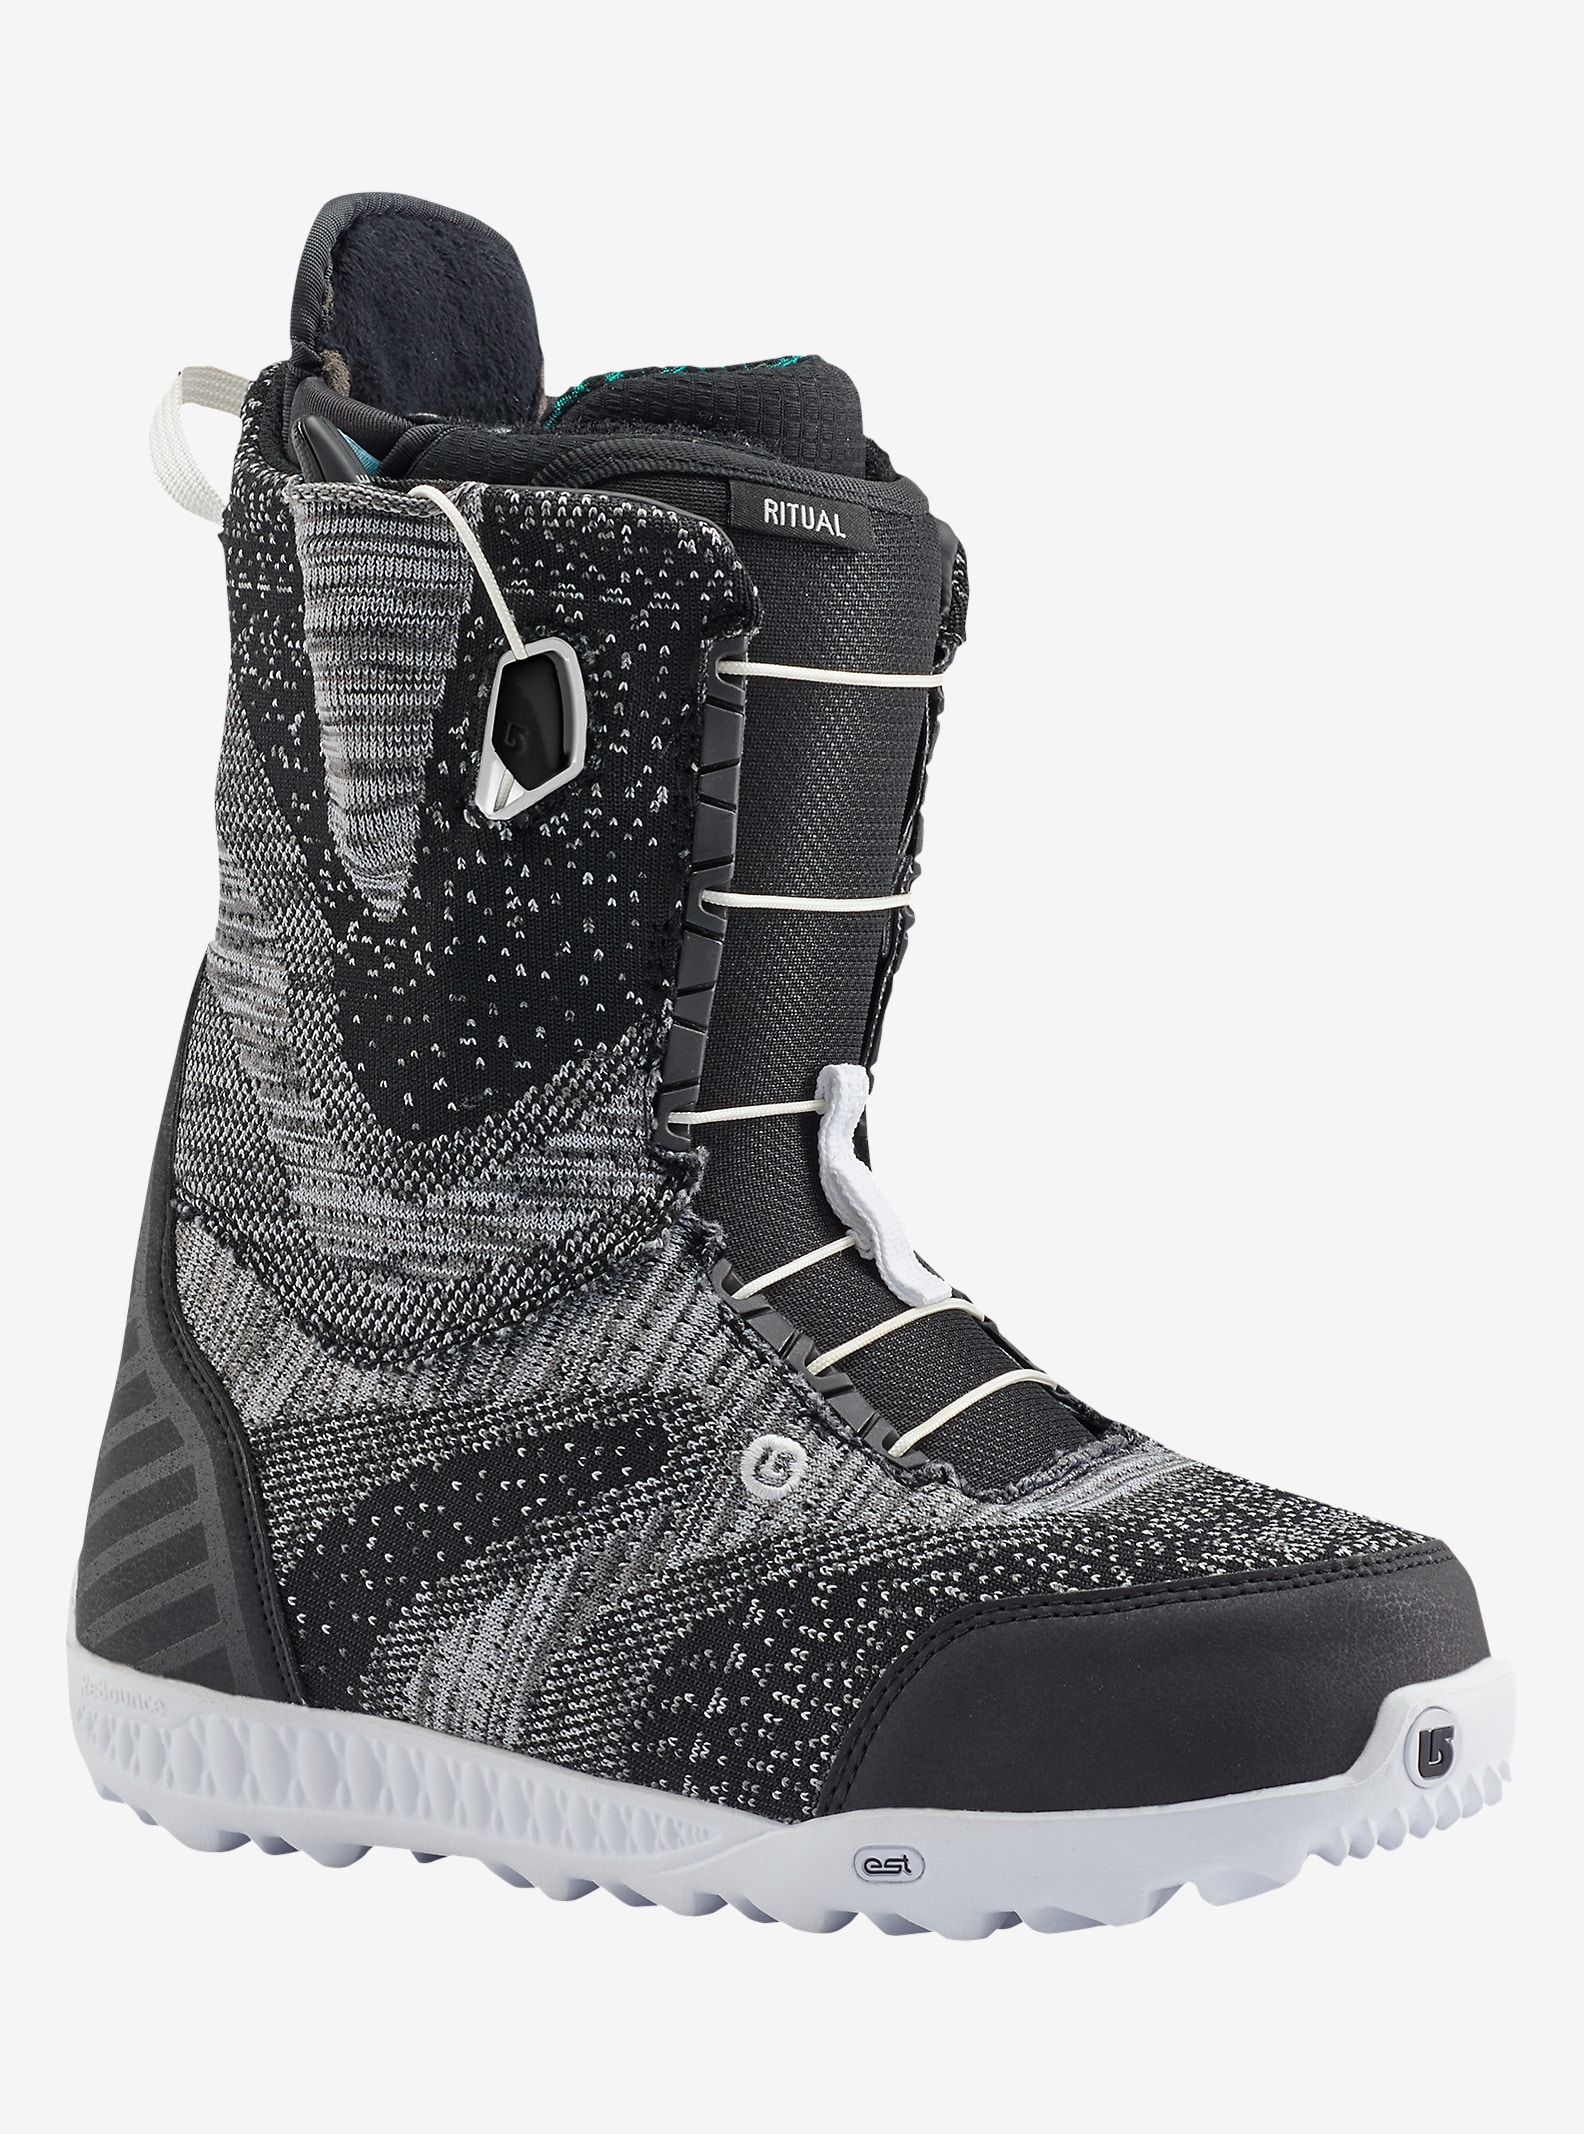 Burton Ritual LTD Snowboardboot angezeigt in Black / Multi